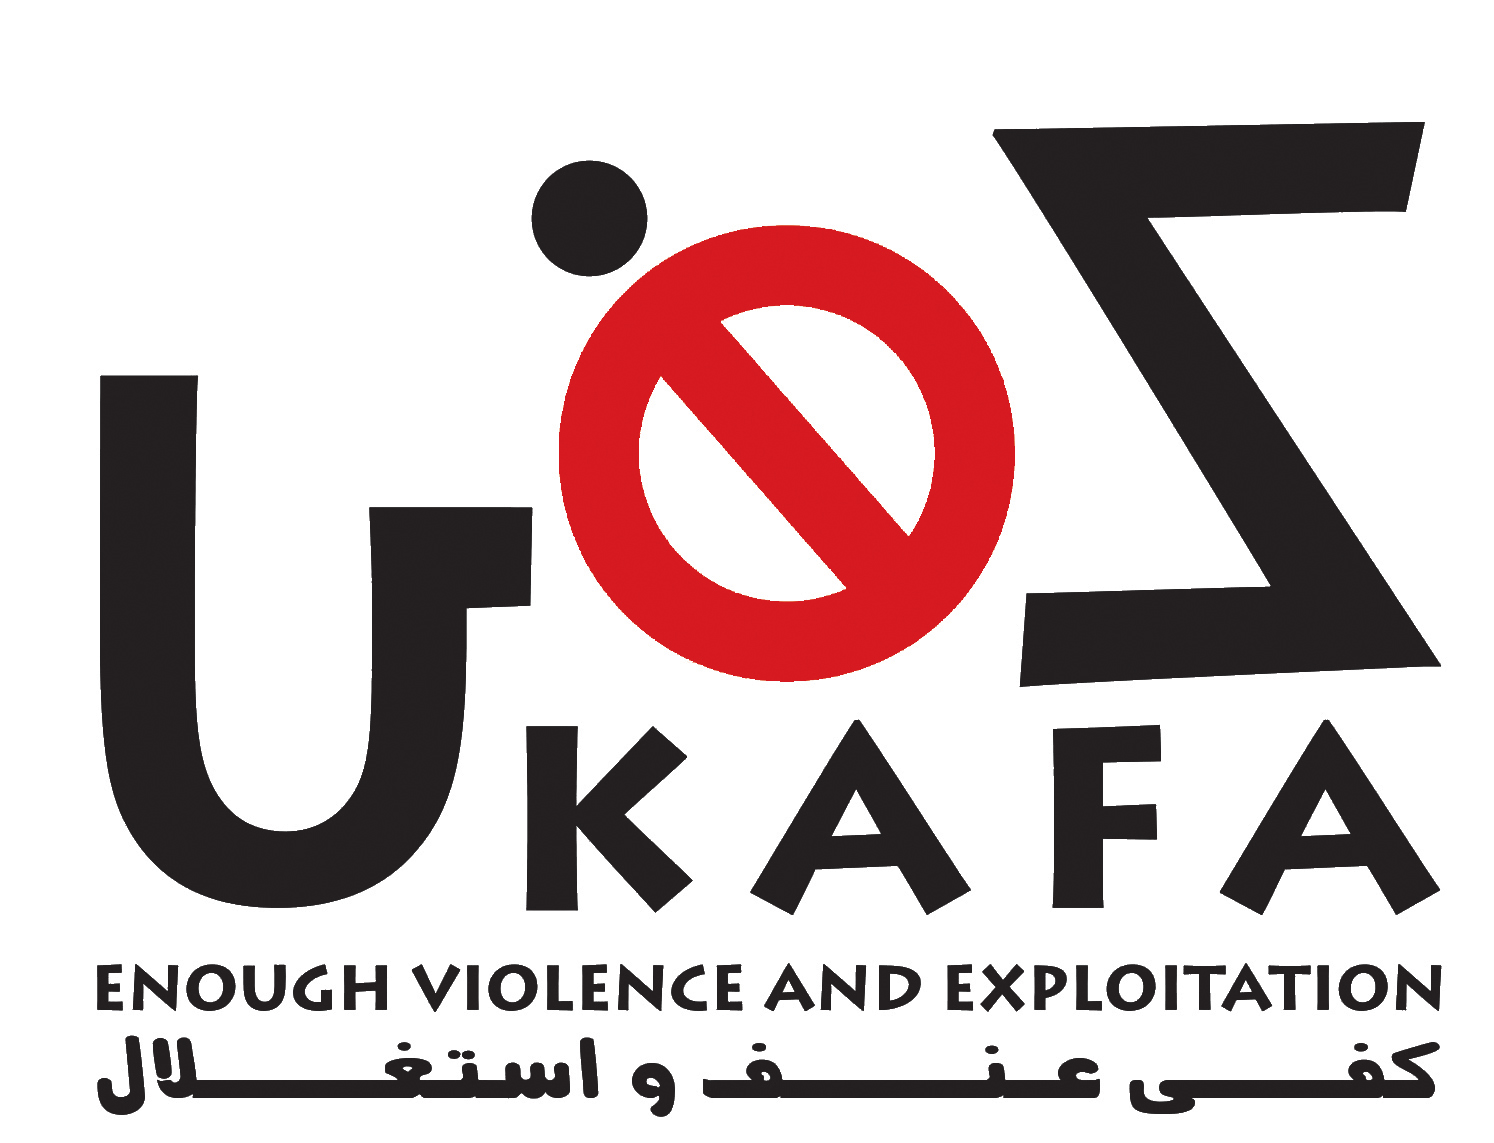 KAFA (Enough) Violence & Exploitation